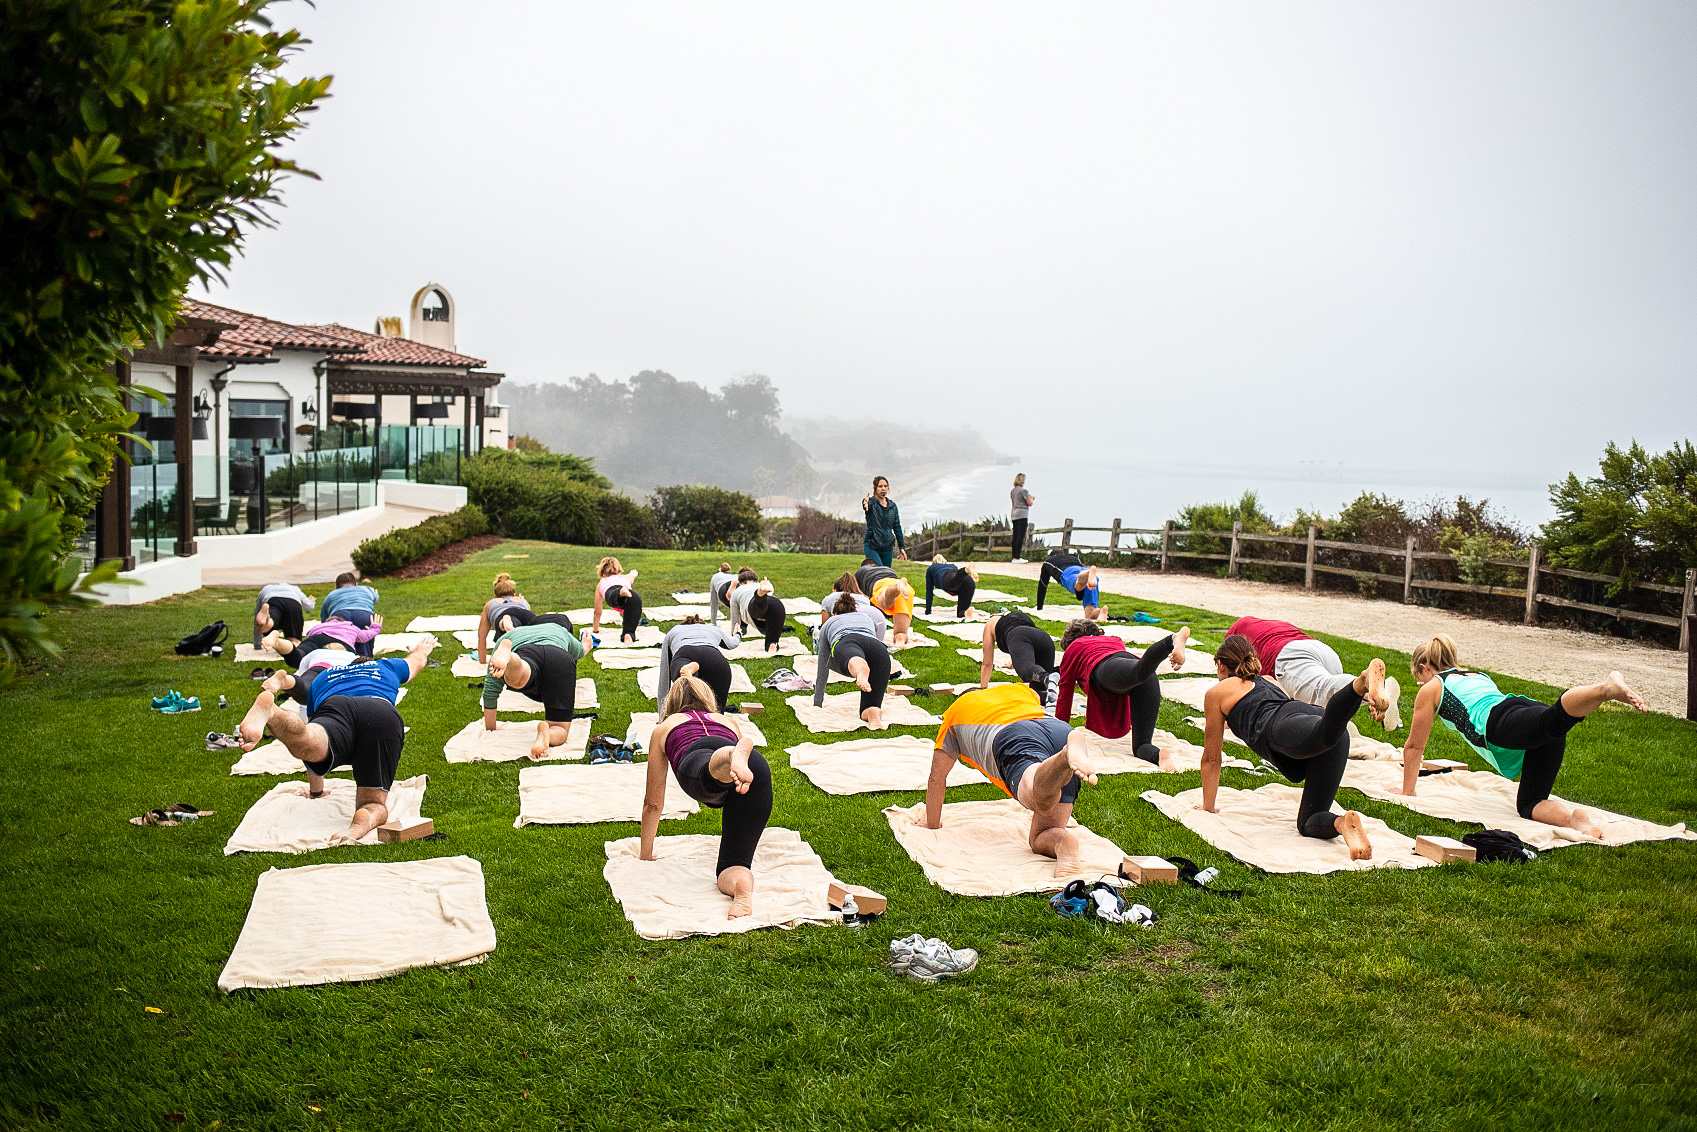 A group enjoys a yoga class in the grass on an ocean front bluff on a foggy morning